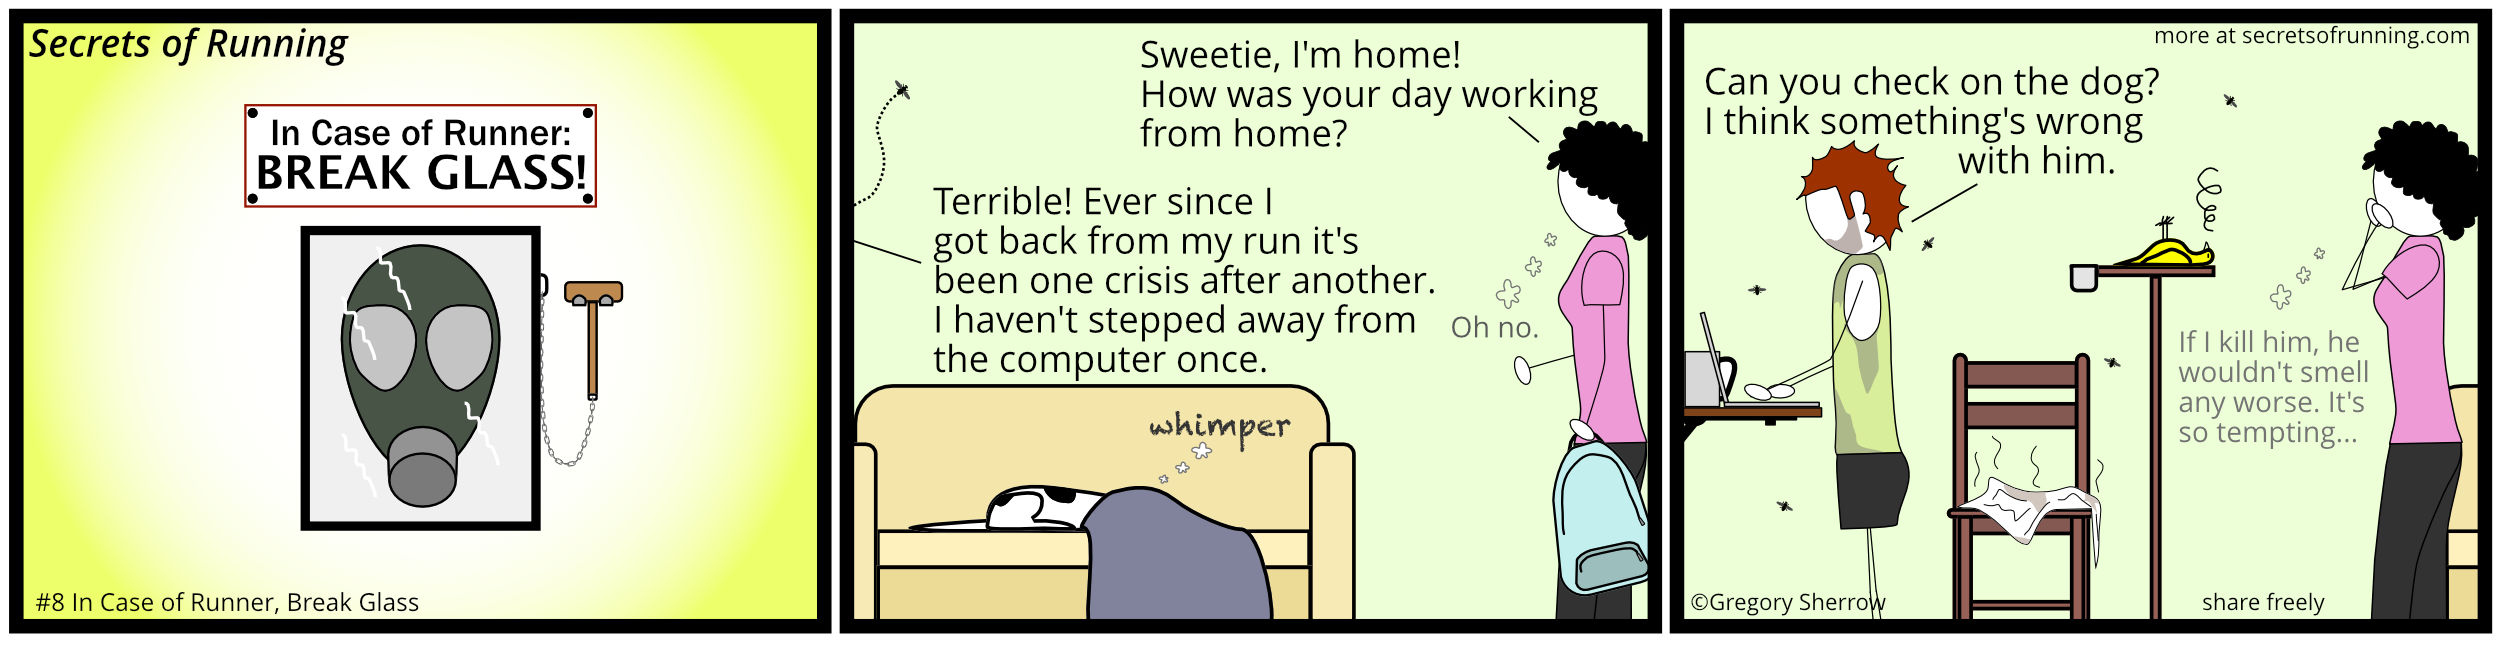 Running humor comic strip